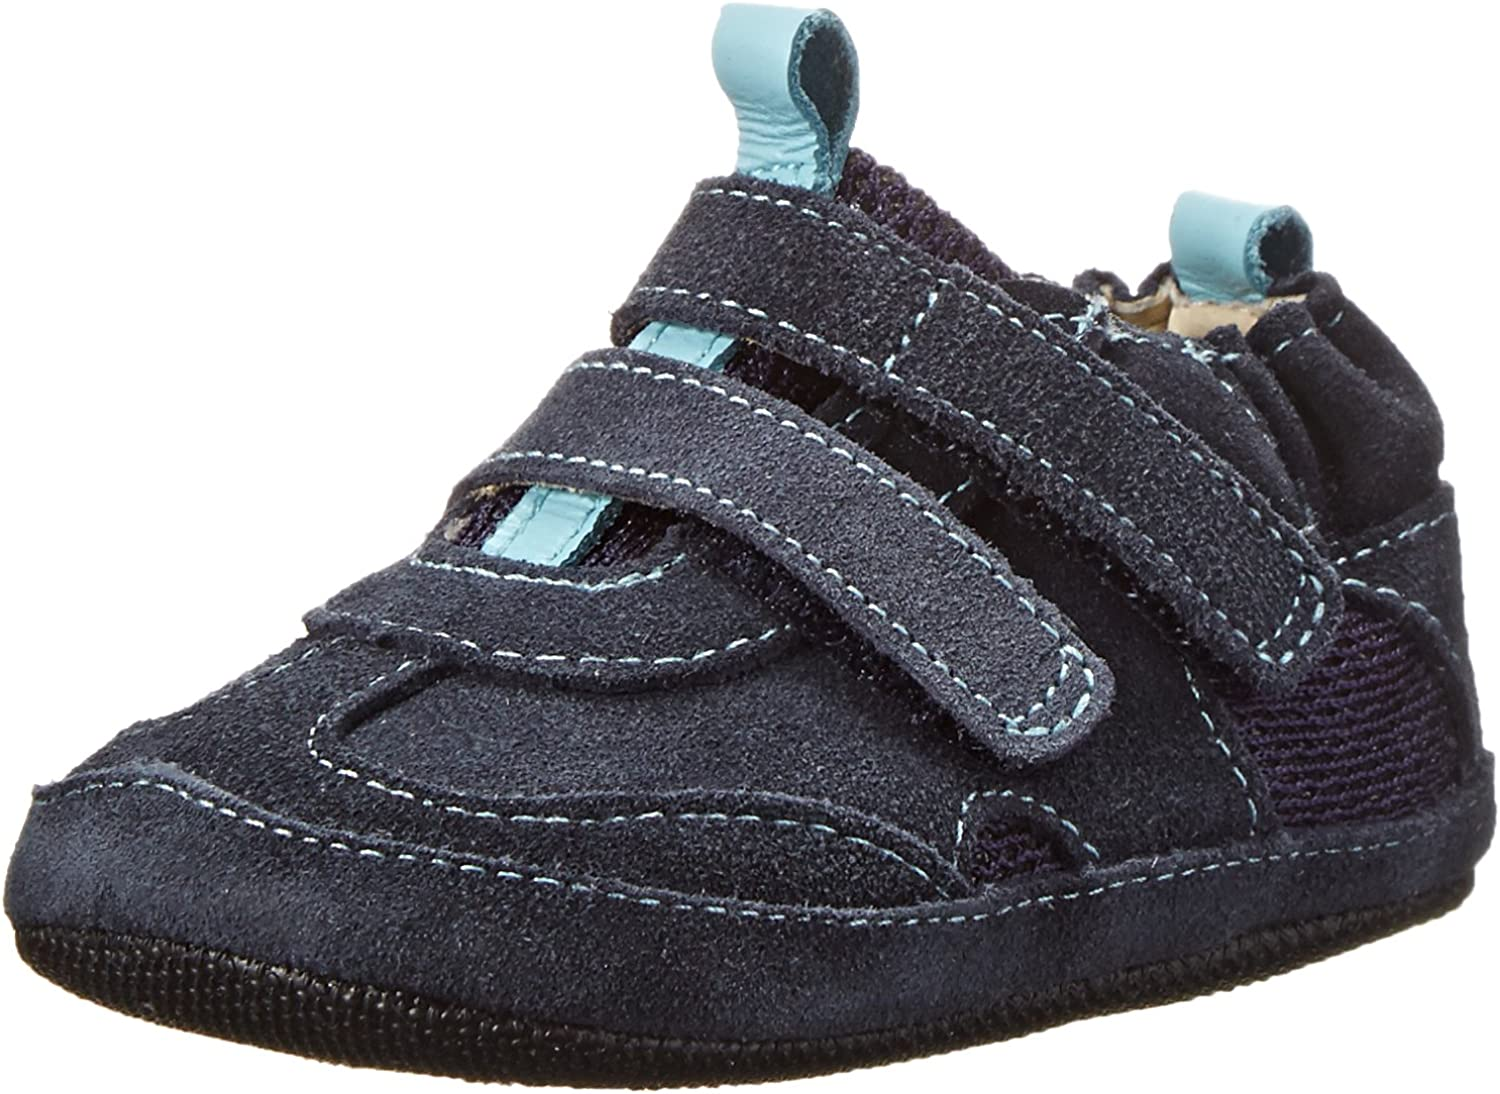 Robeez London Shoe Infant Toddler Cash Popular products special price